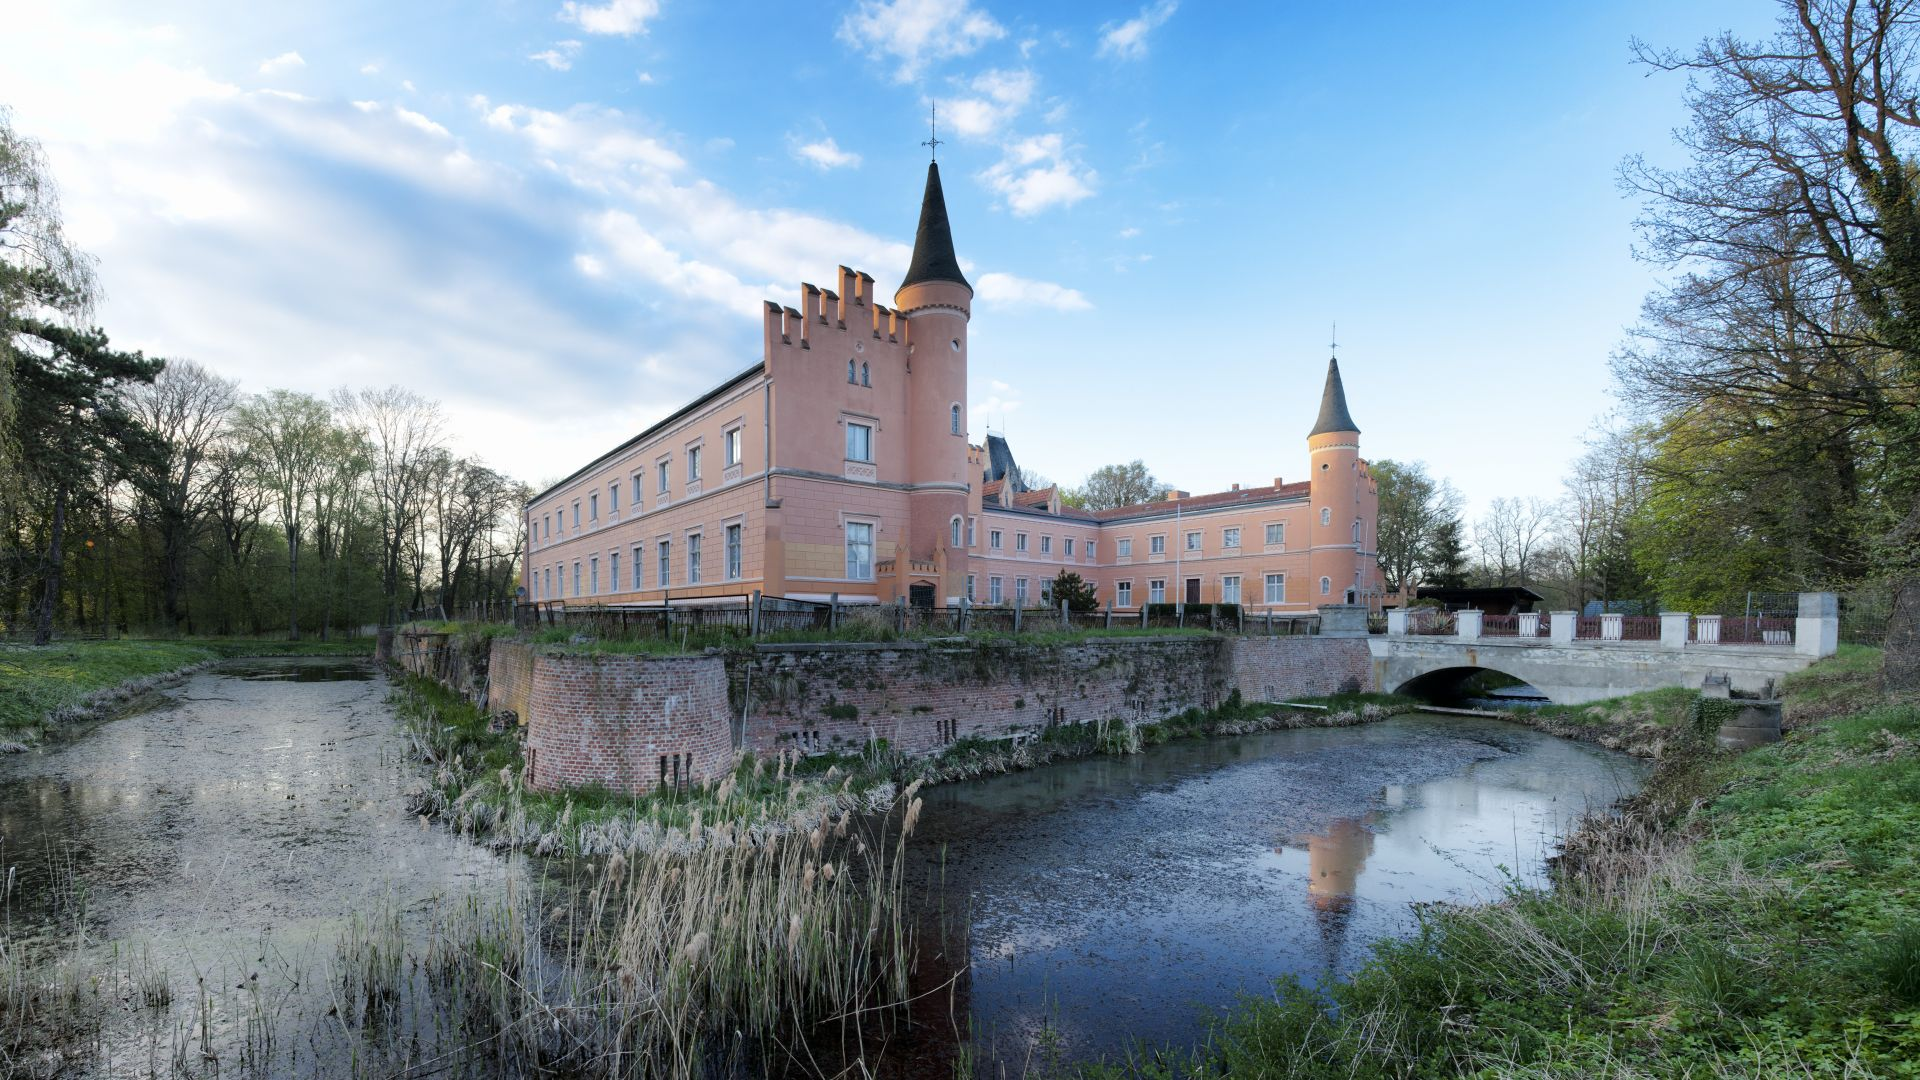 Gusow-Platkow: Gusow Castle surrounded by a moat